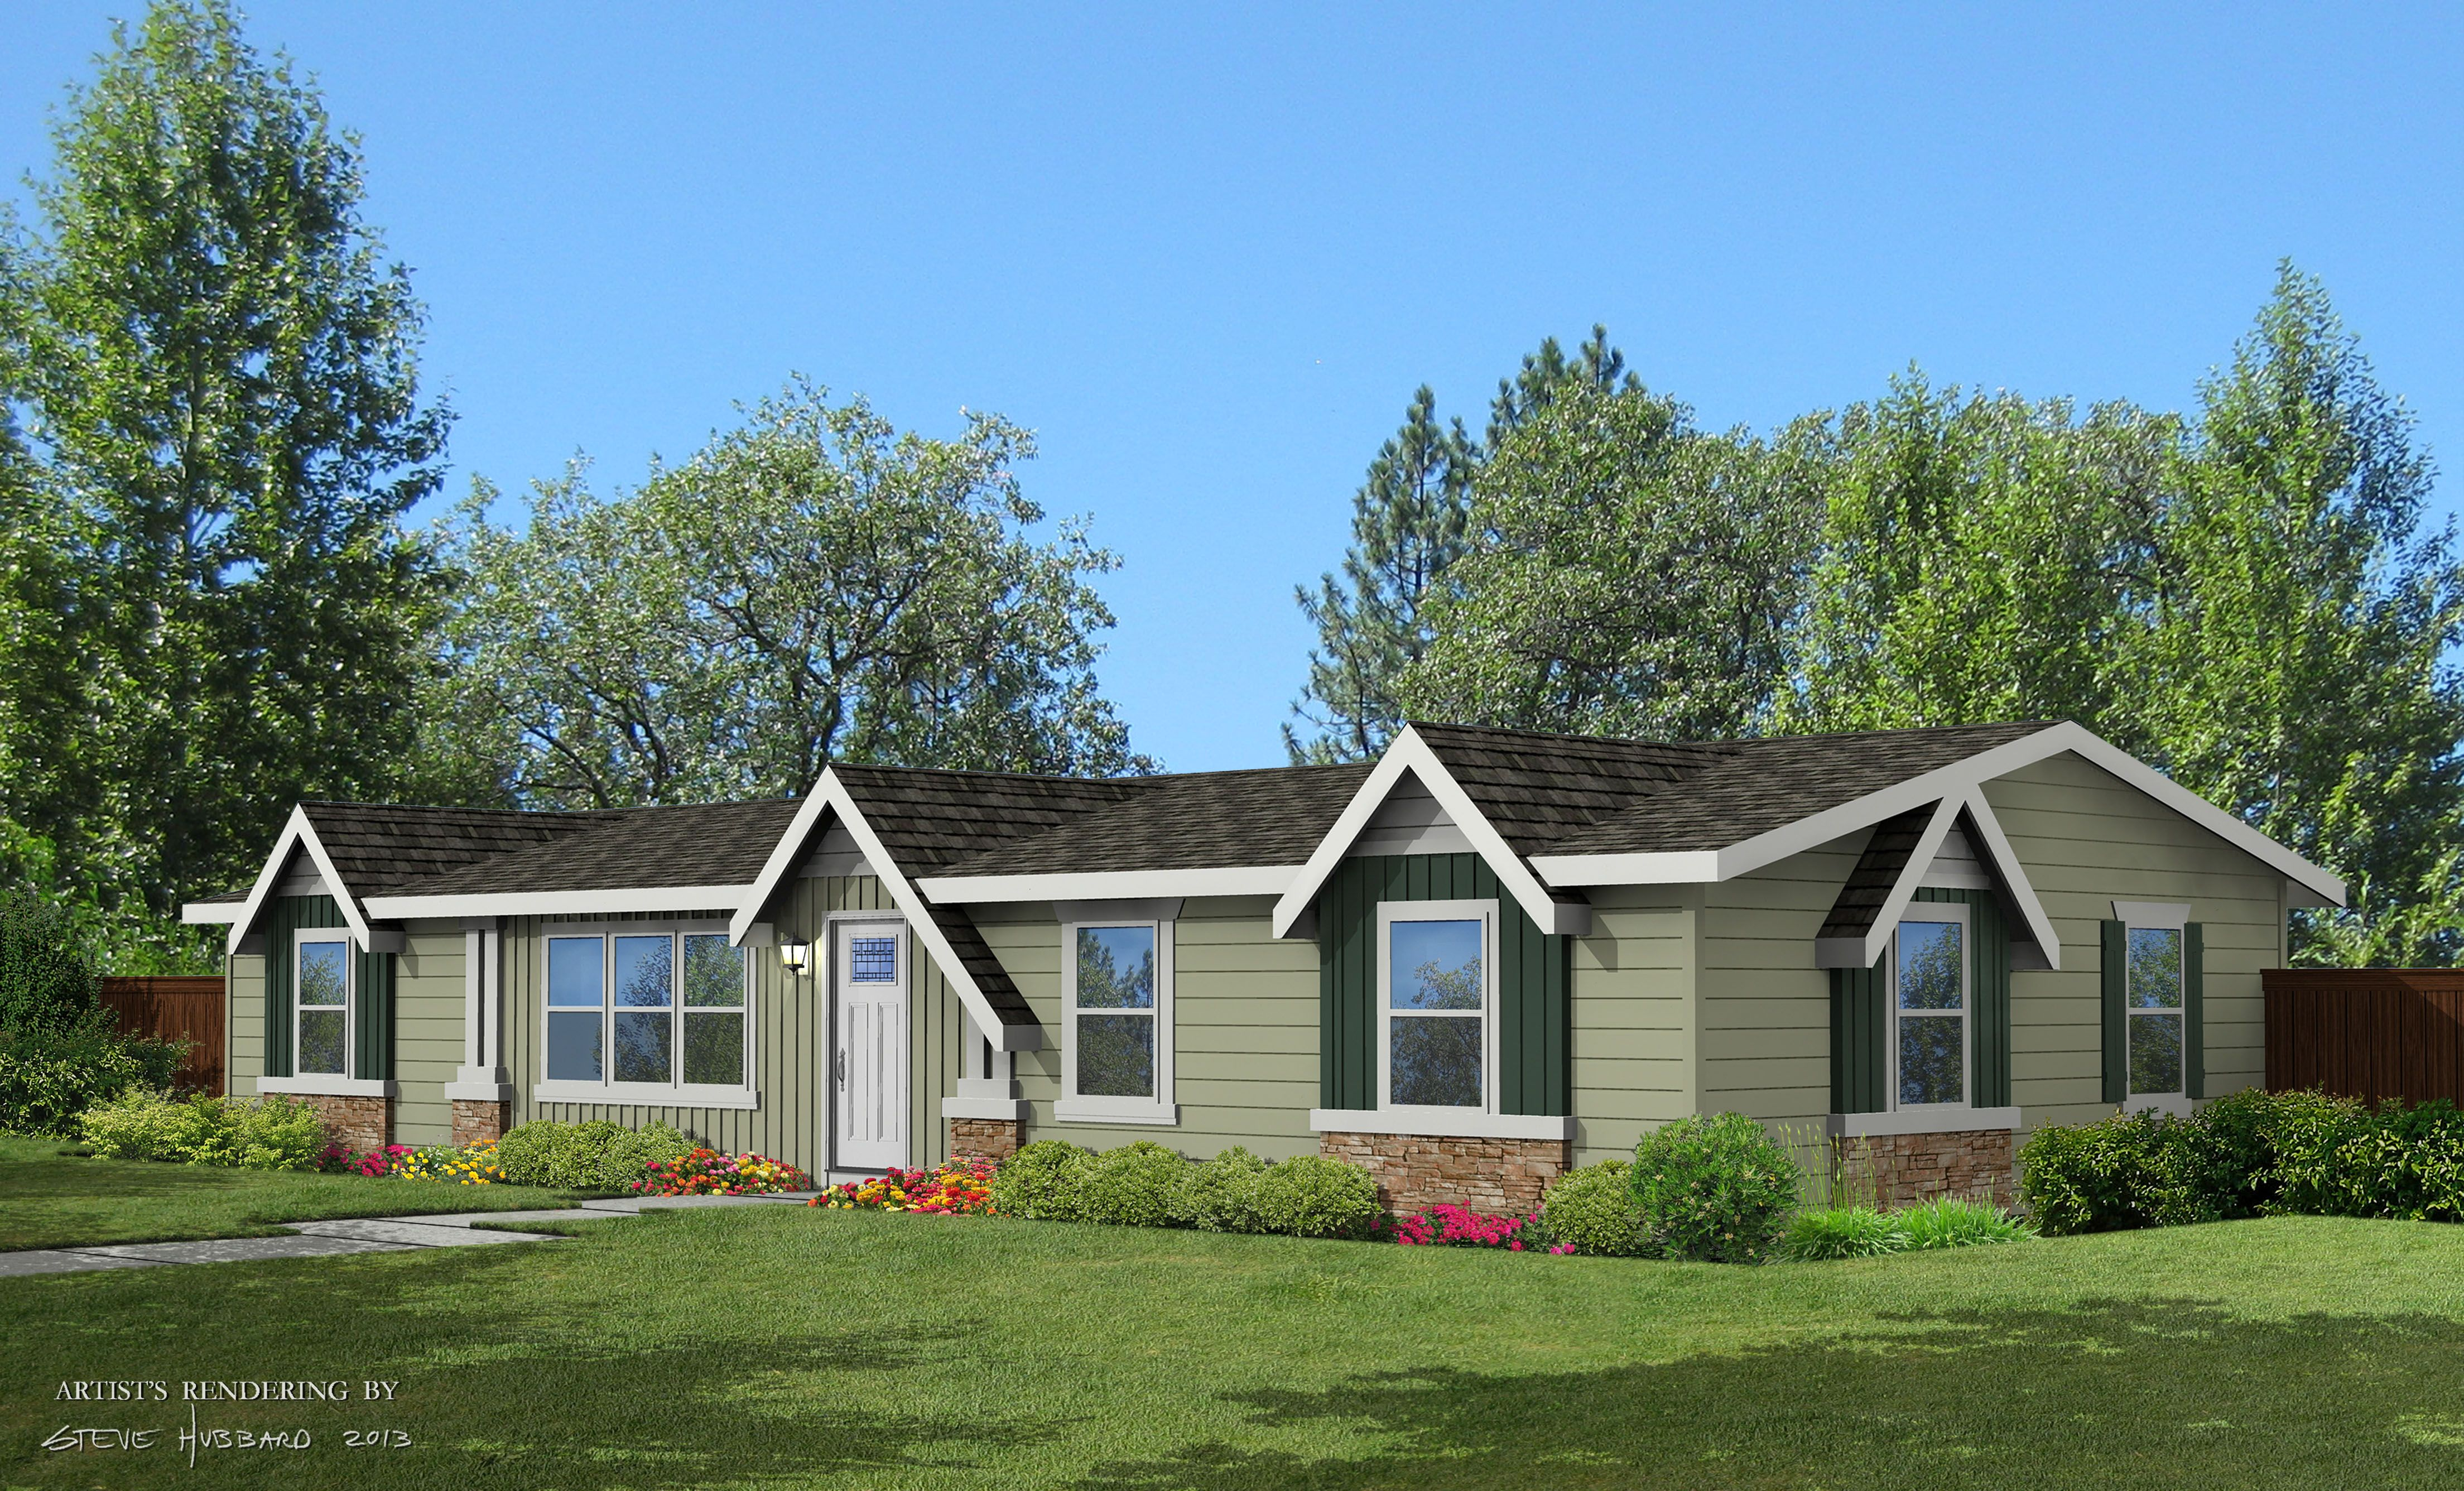 3 Bed 2 Bath 1700 Square Feet Maplevale Double Wide Home Double Wide Home Modular Home Plans Modular Homes For Sale